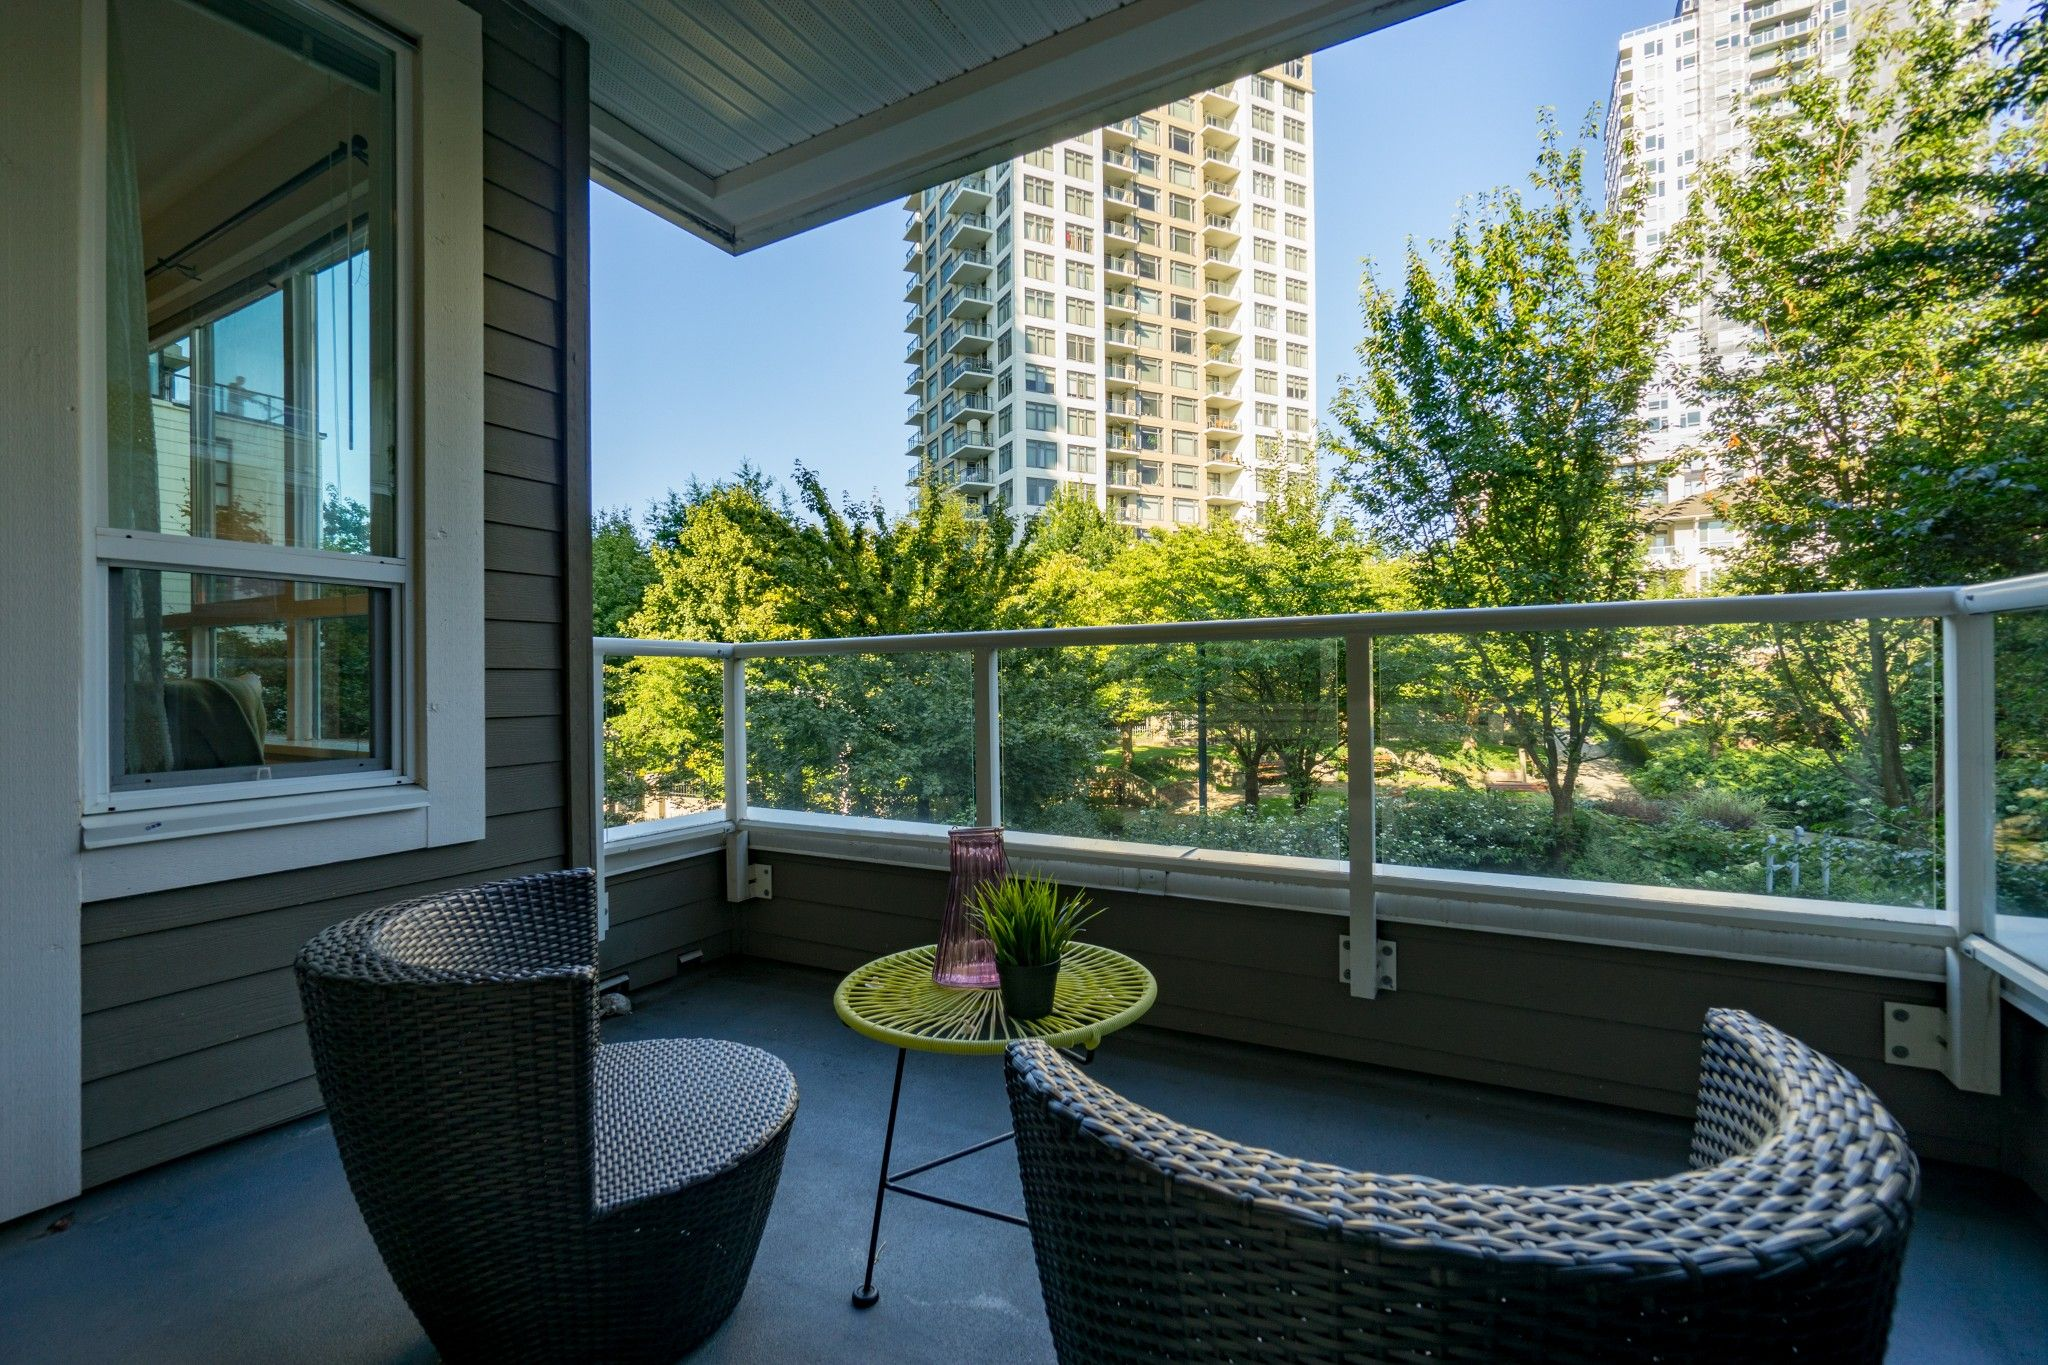 Photo 15: Photos: 208 3551 FOSTER Avenue in Vancouver: Collingwood VE Condo for sale (Vancouver East)  : MLS®# R2291555